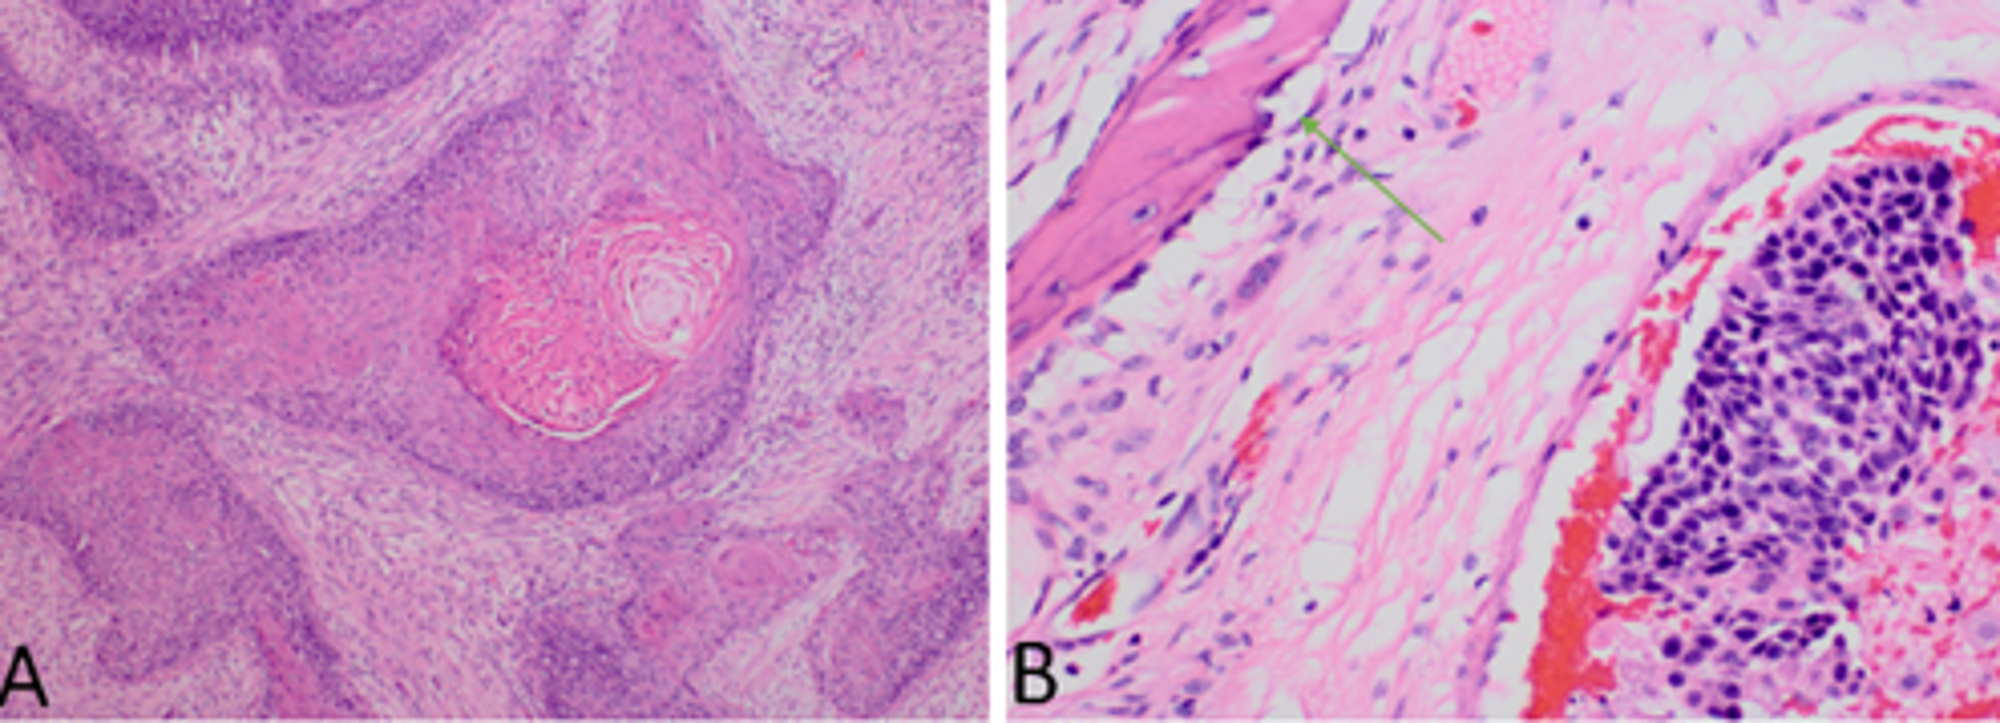 squamous cell carcinoma and papilloma